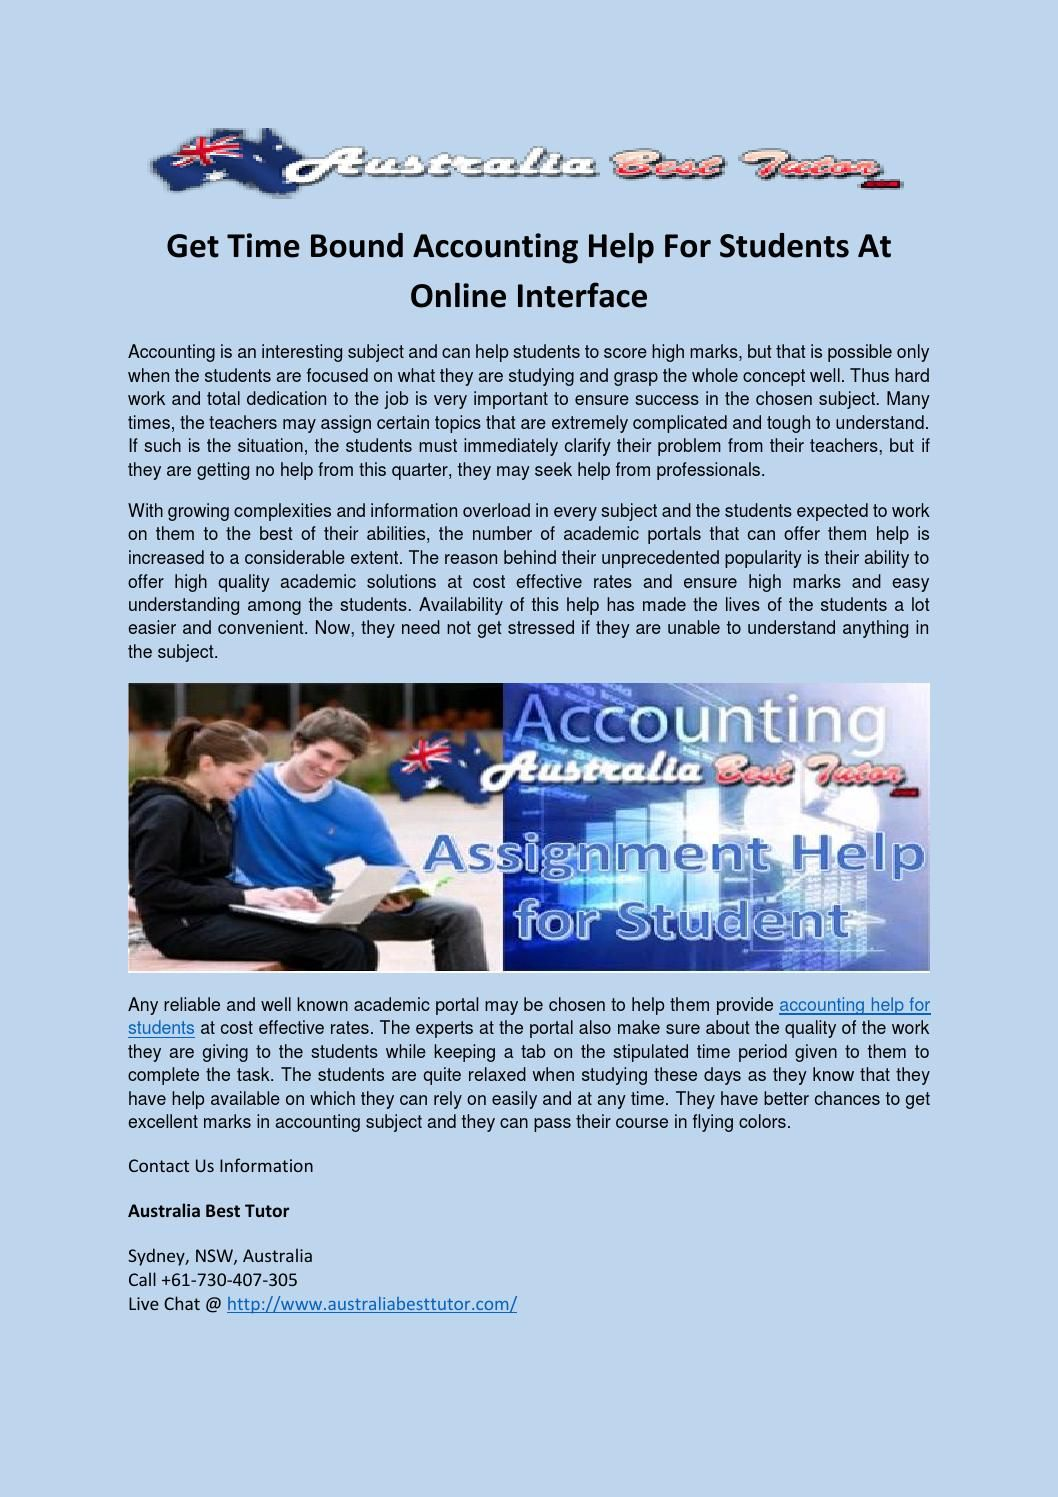 Get time bound accounting help for students at online interface